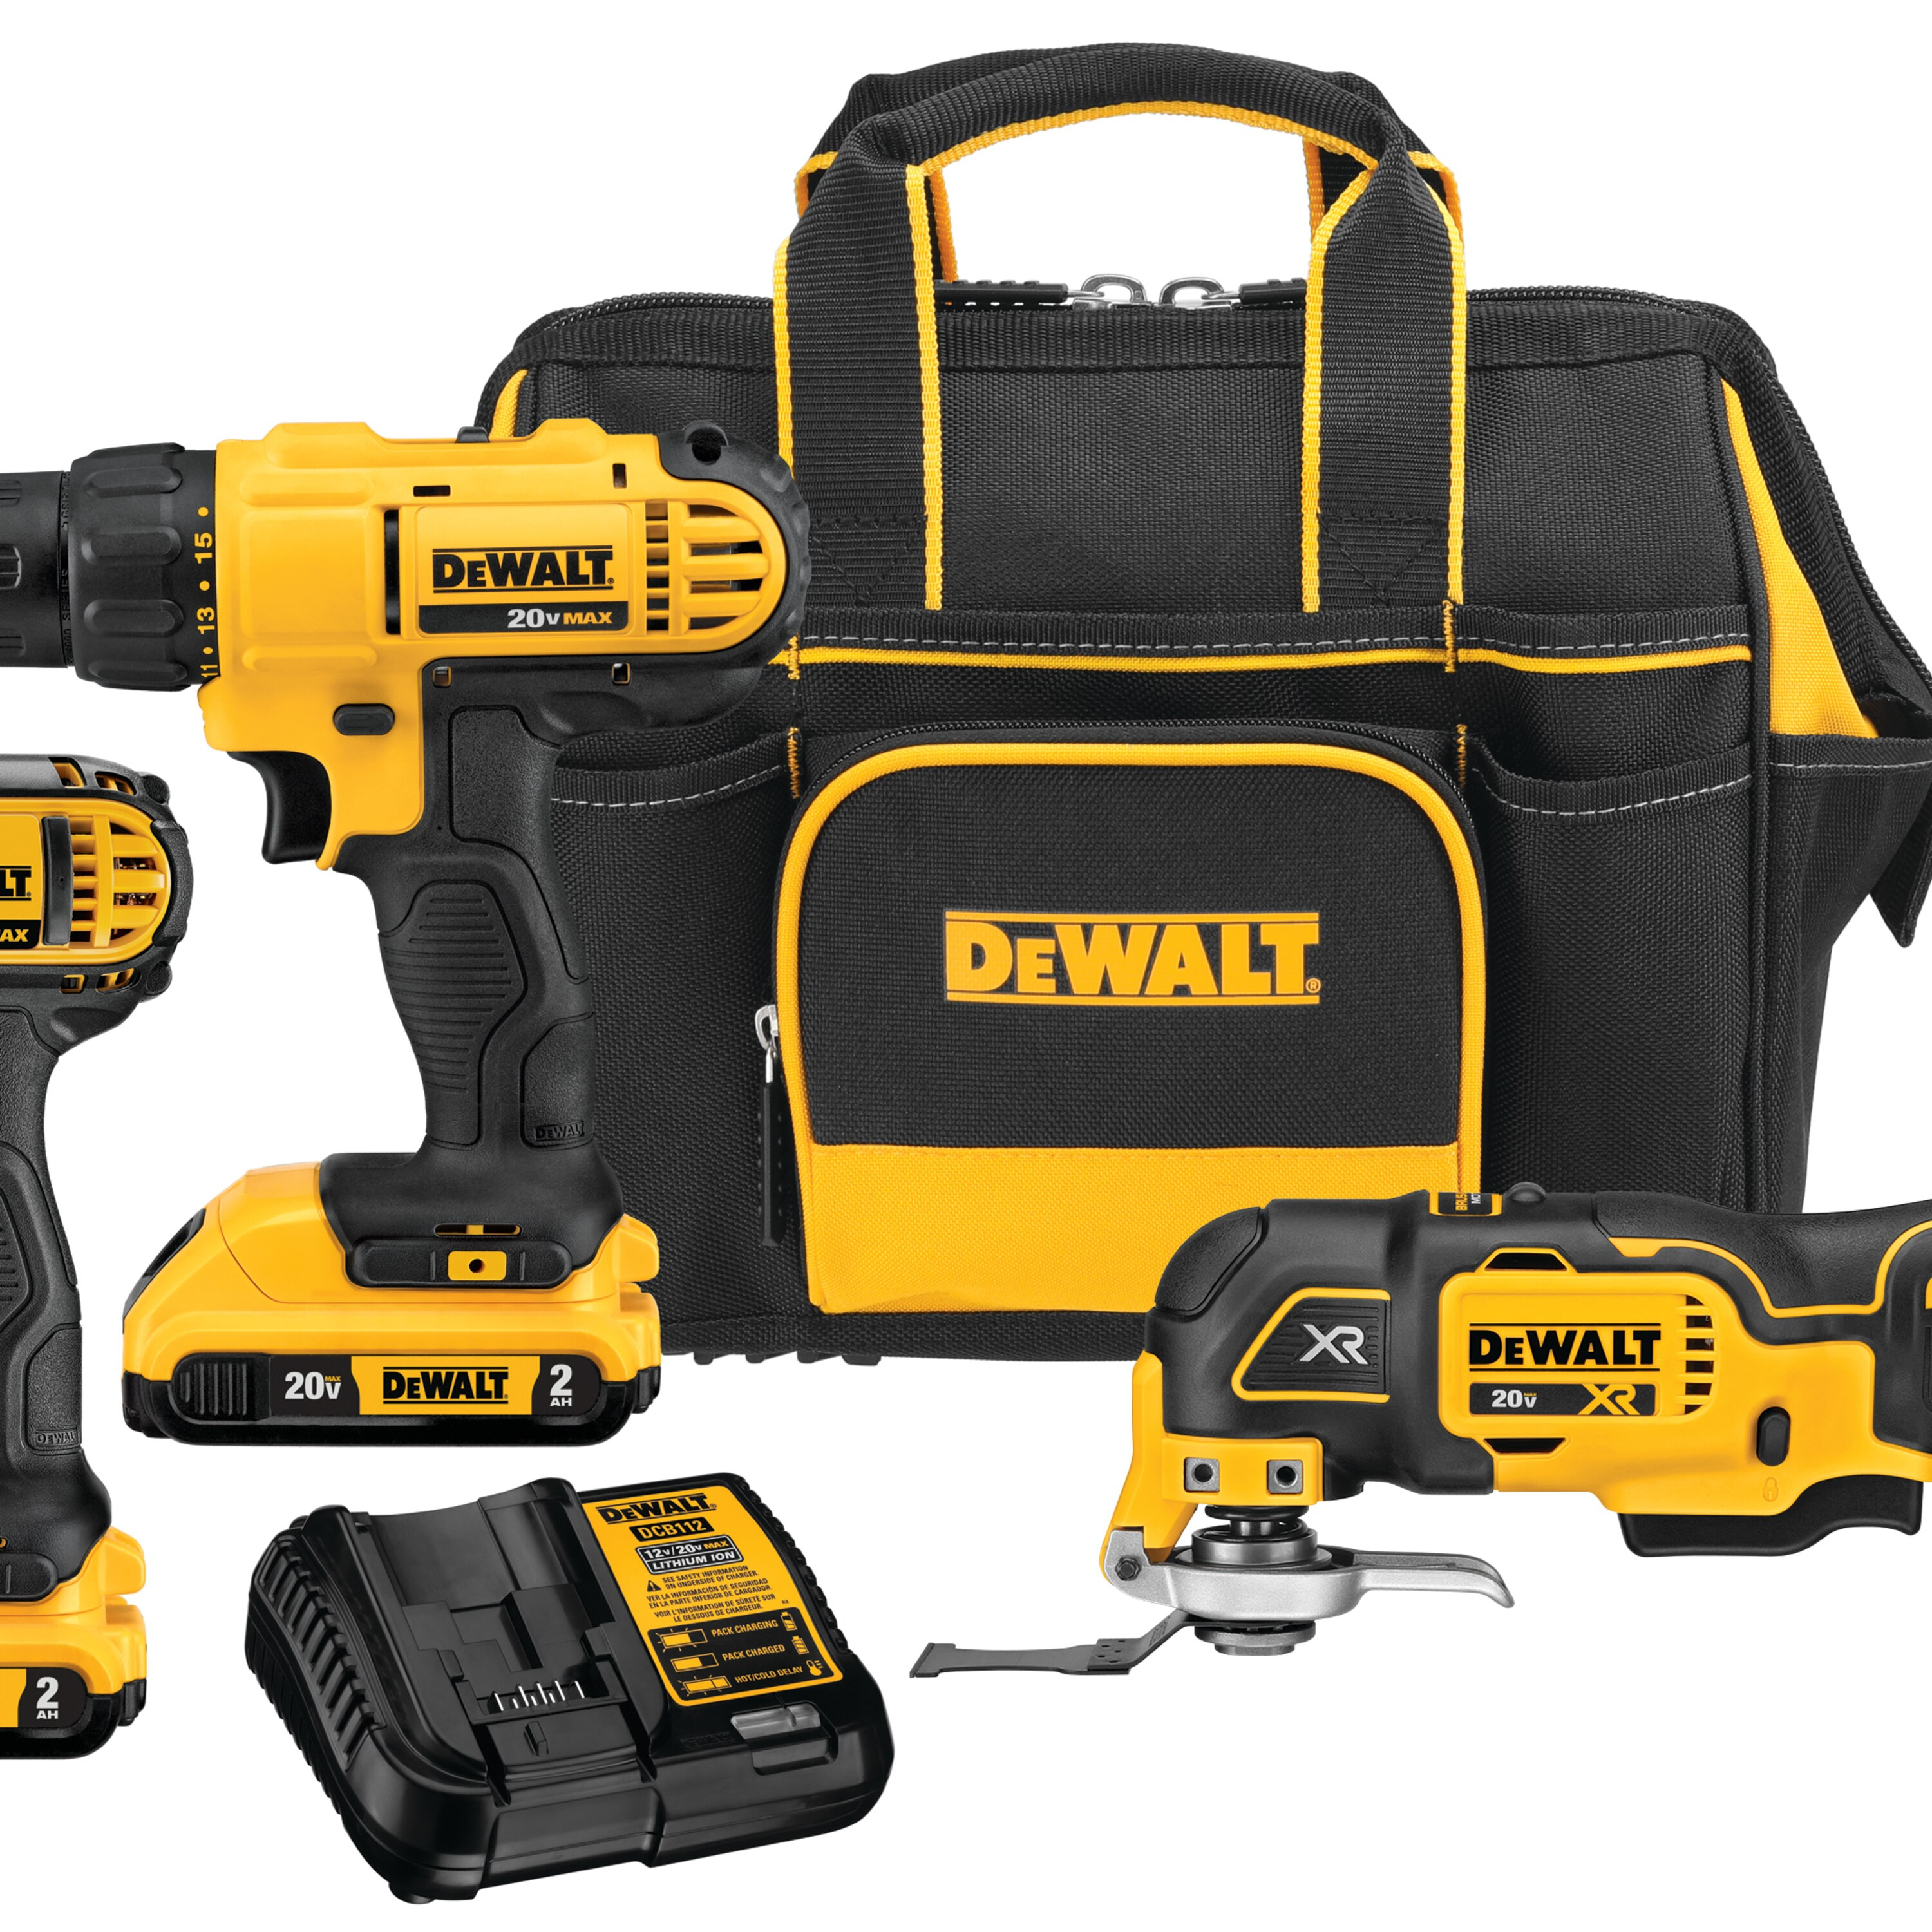 20v Max Cordless 3 Tool Combo Kit With Contractor Bag Dckss344d2 Dewalt